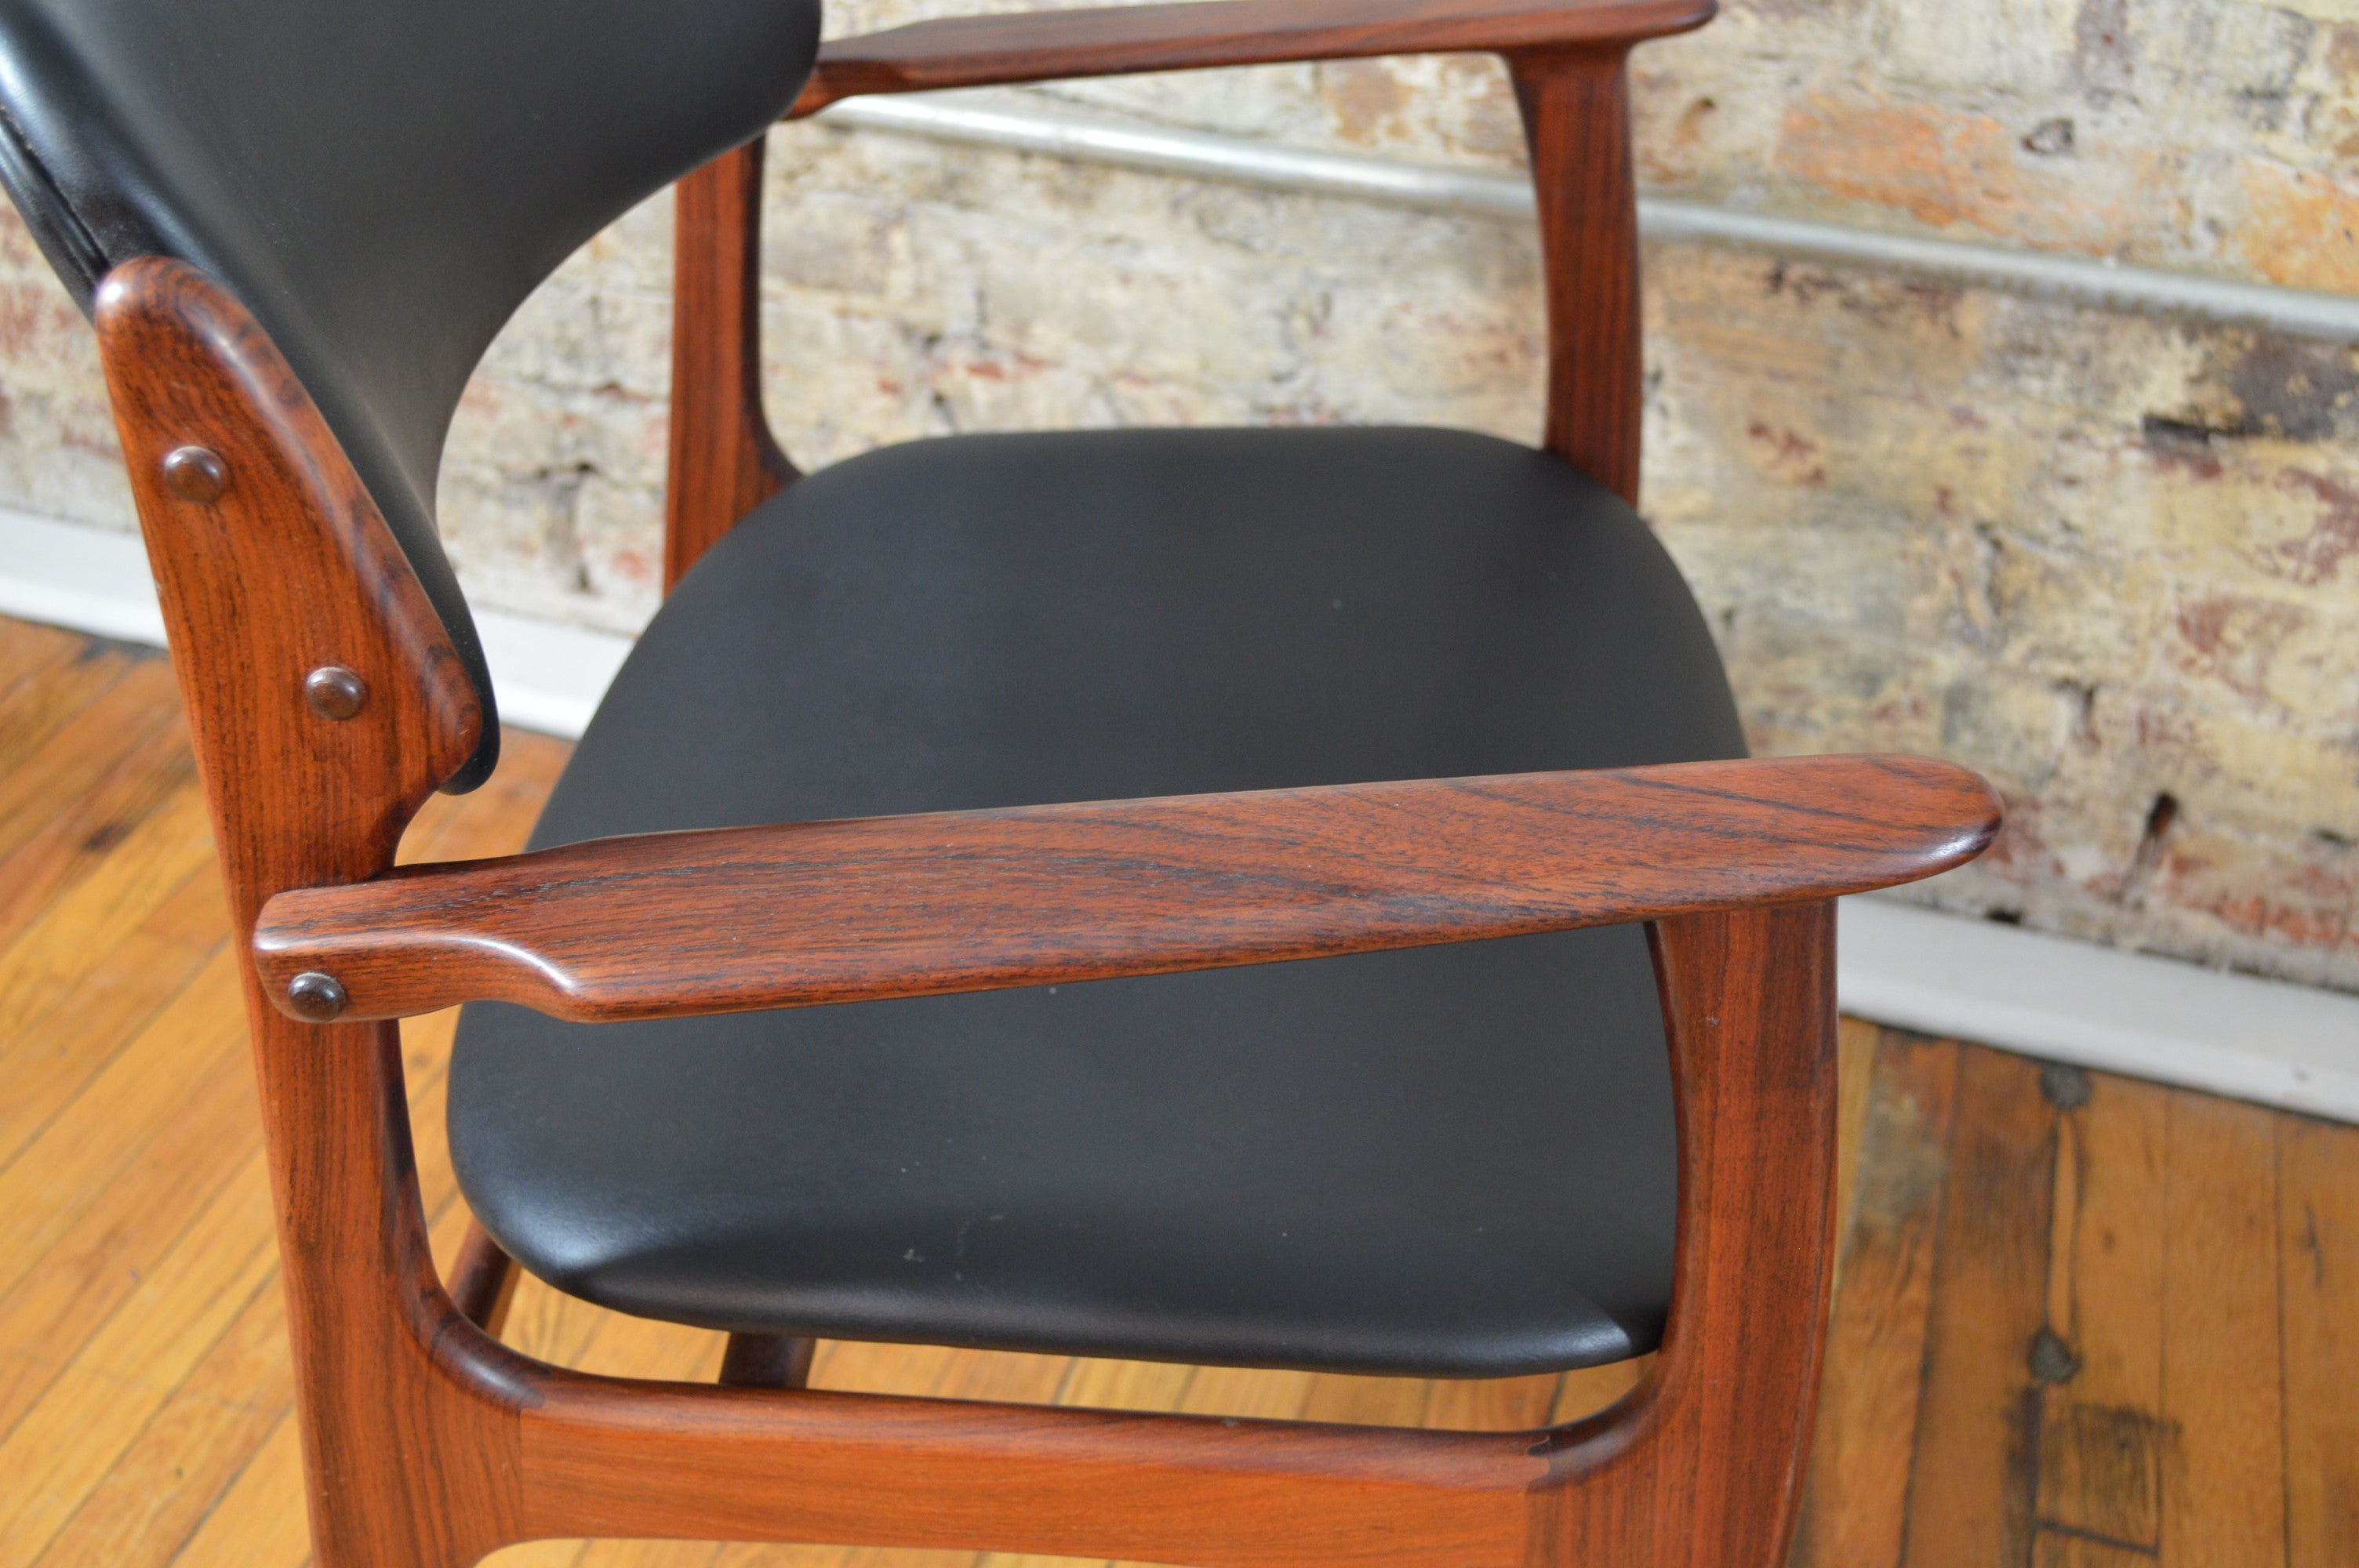 rosewood dining chairs by erik buch for odense maskinsnedkeri rosewood dining chairs by erik buch for odense maskinsnedkeri